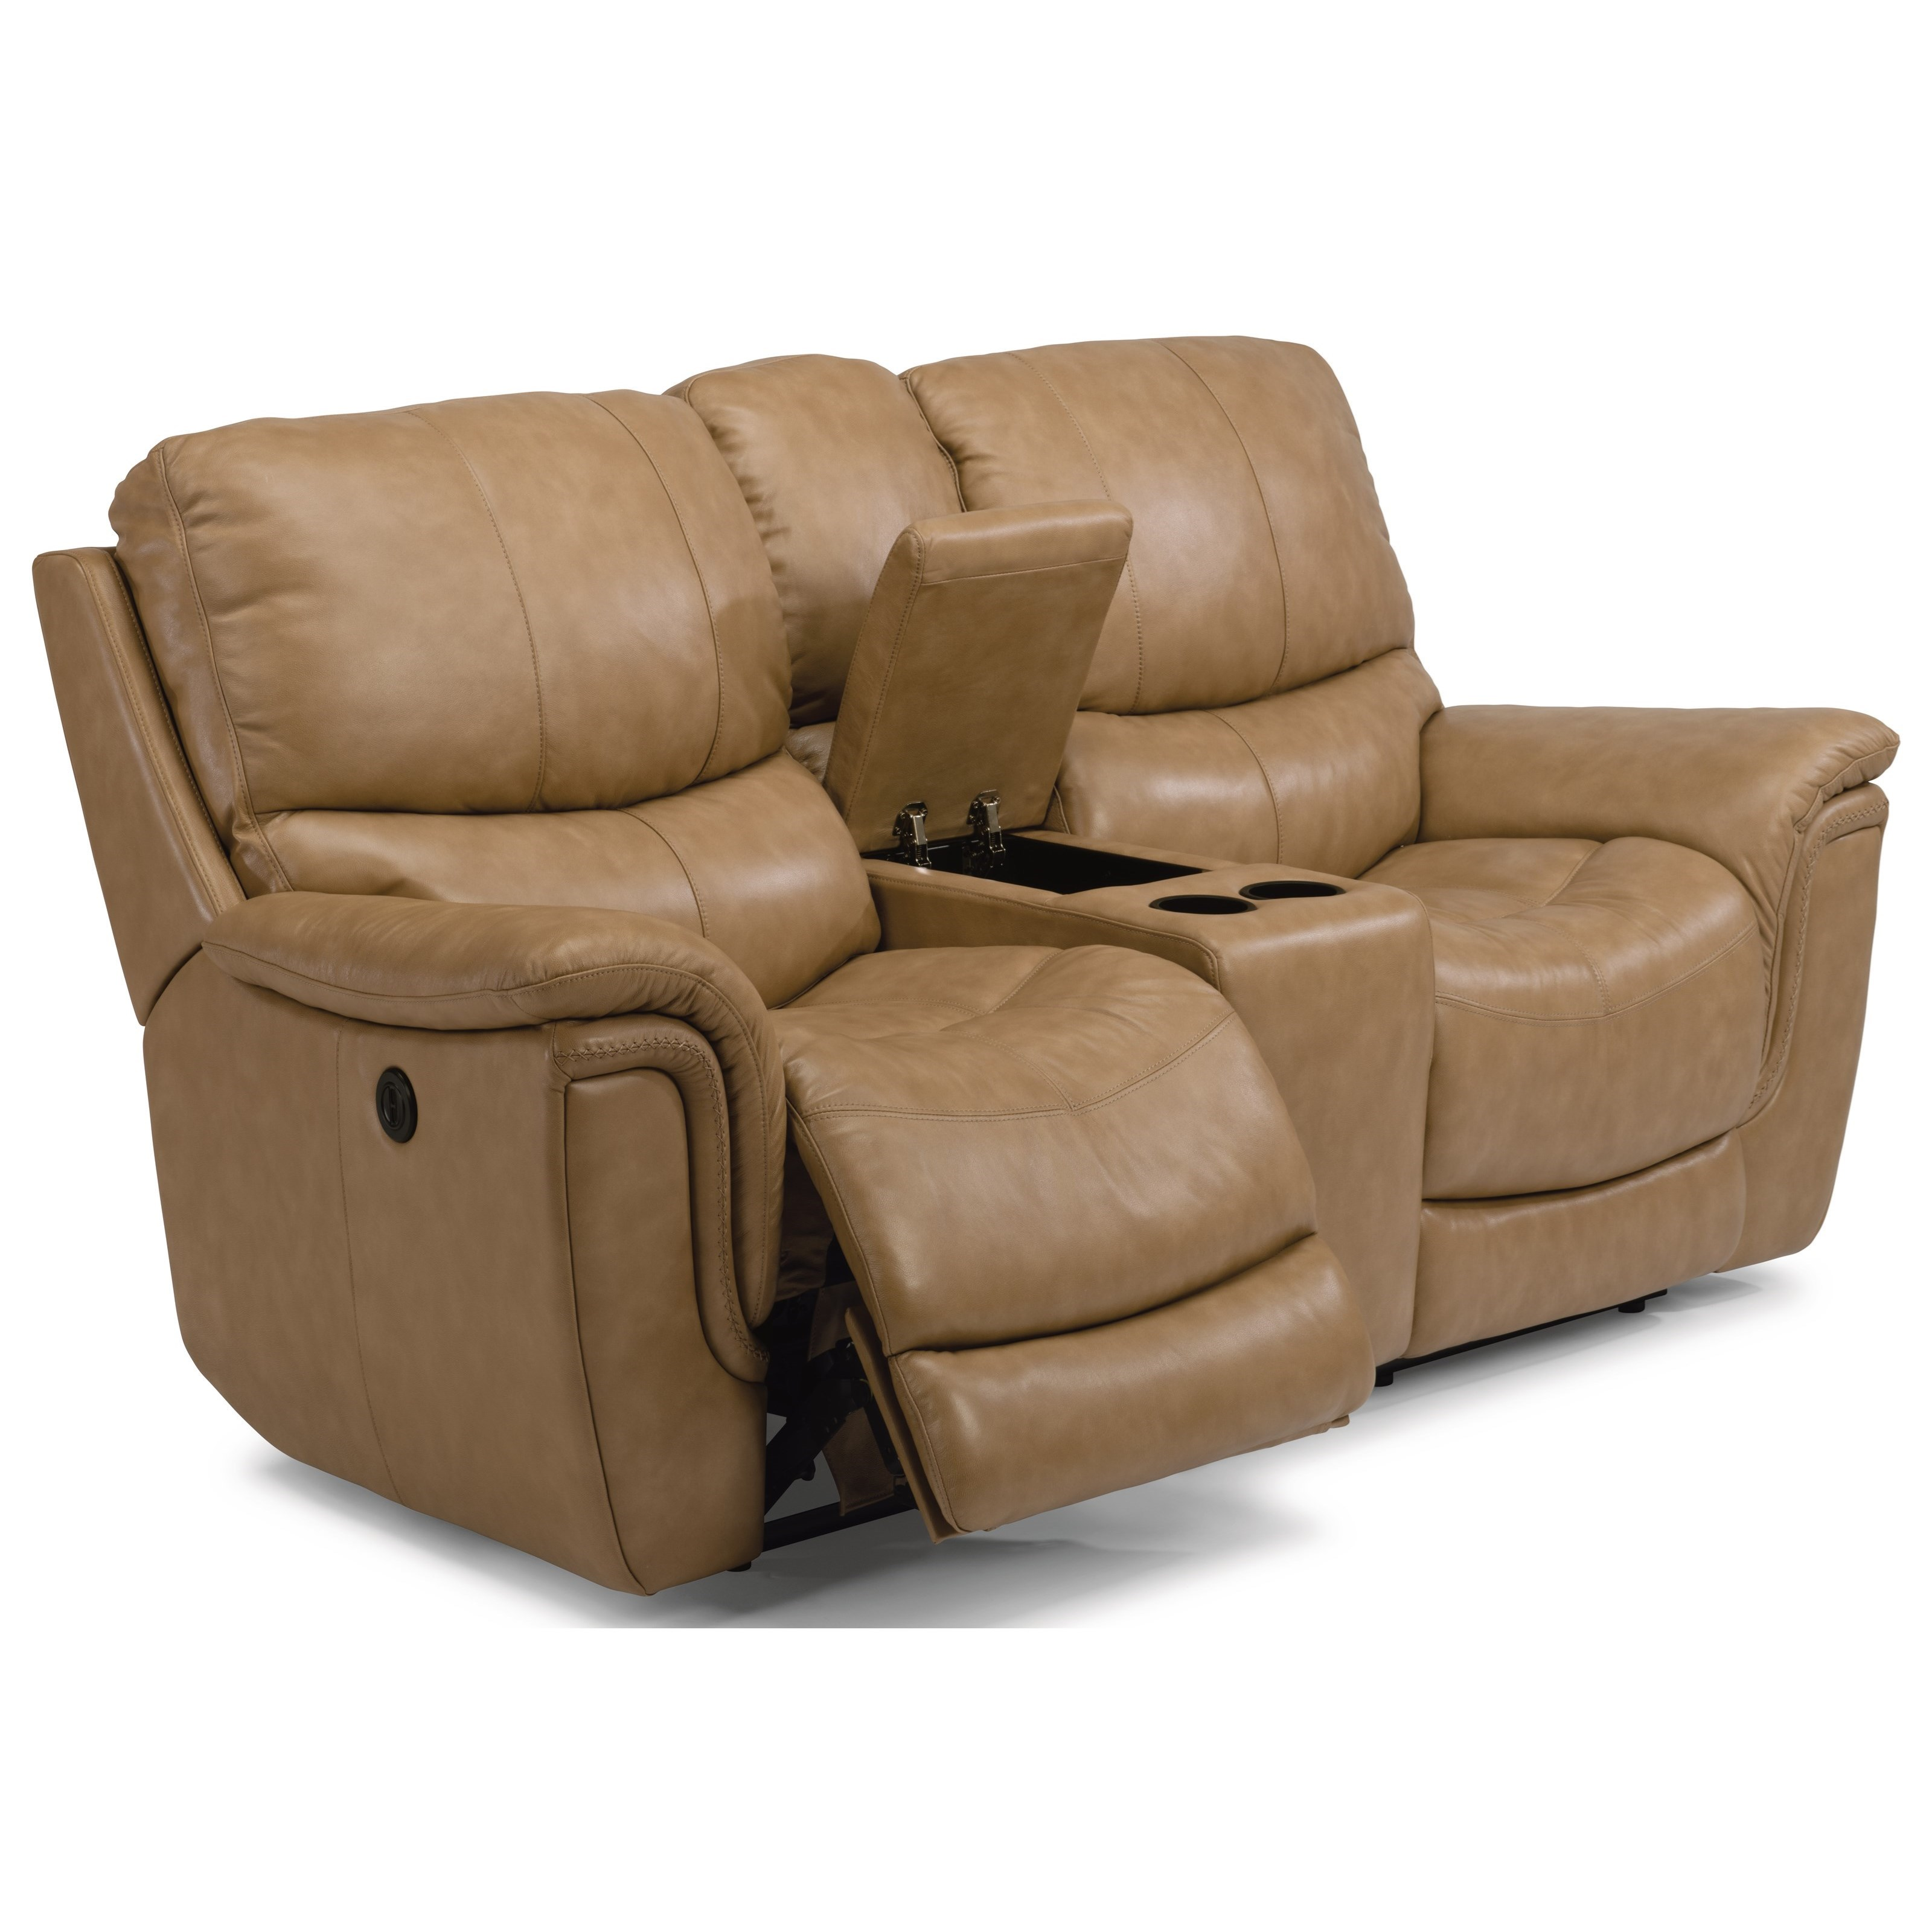 Flexsteel Latitudes Coco Casual Power Reclining Loveseat With Console Cup Holders And Usb Ports